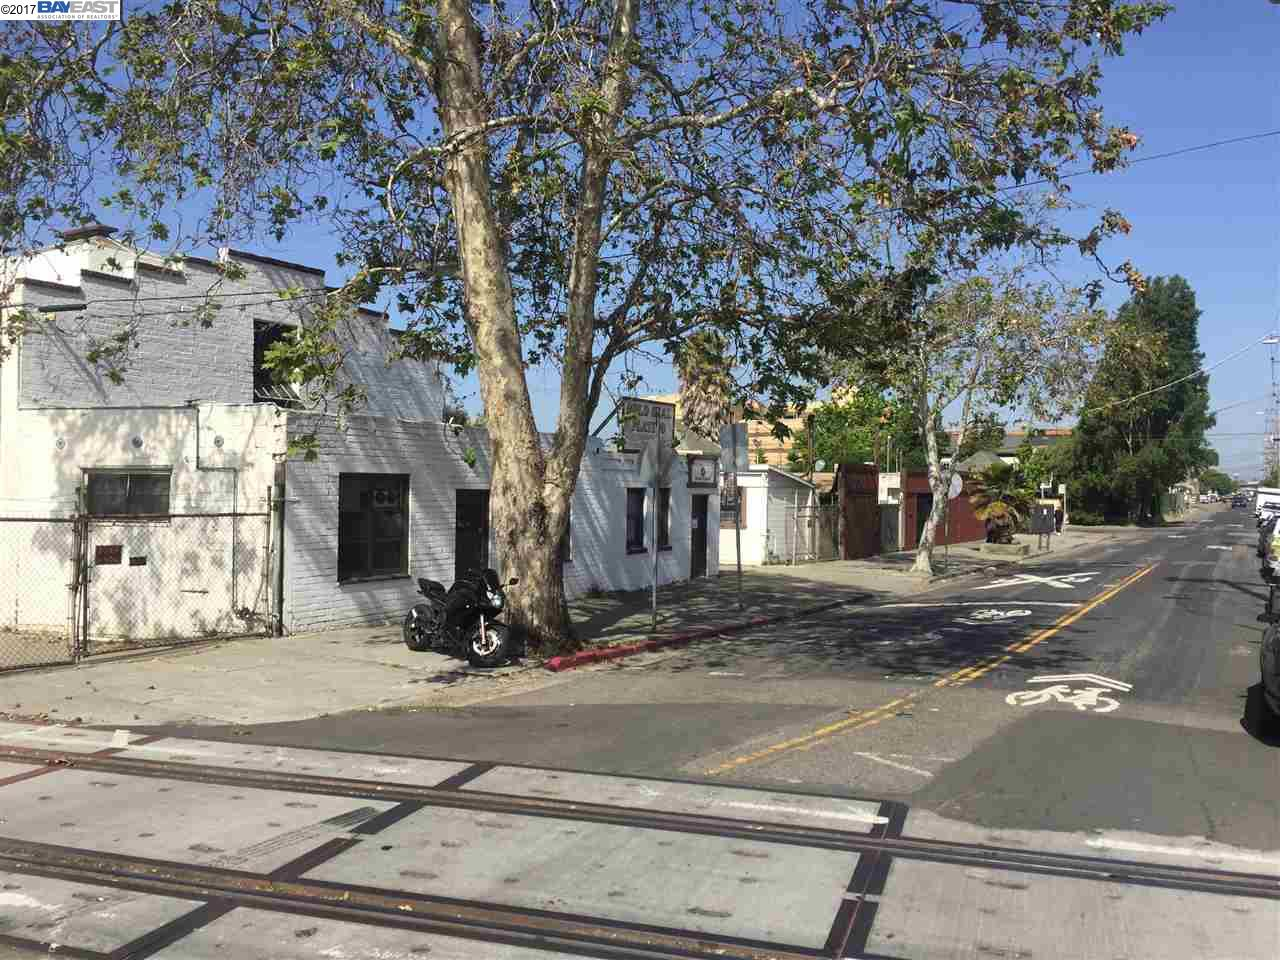 Commercial for Sale at 3125 E 7Th Street 3125 E 7Th Street Oakland, California 94601 United States